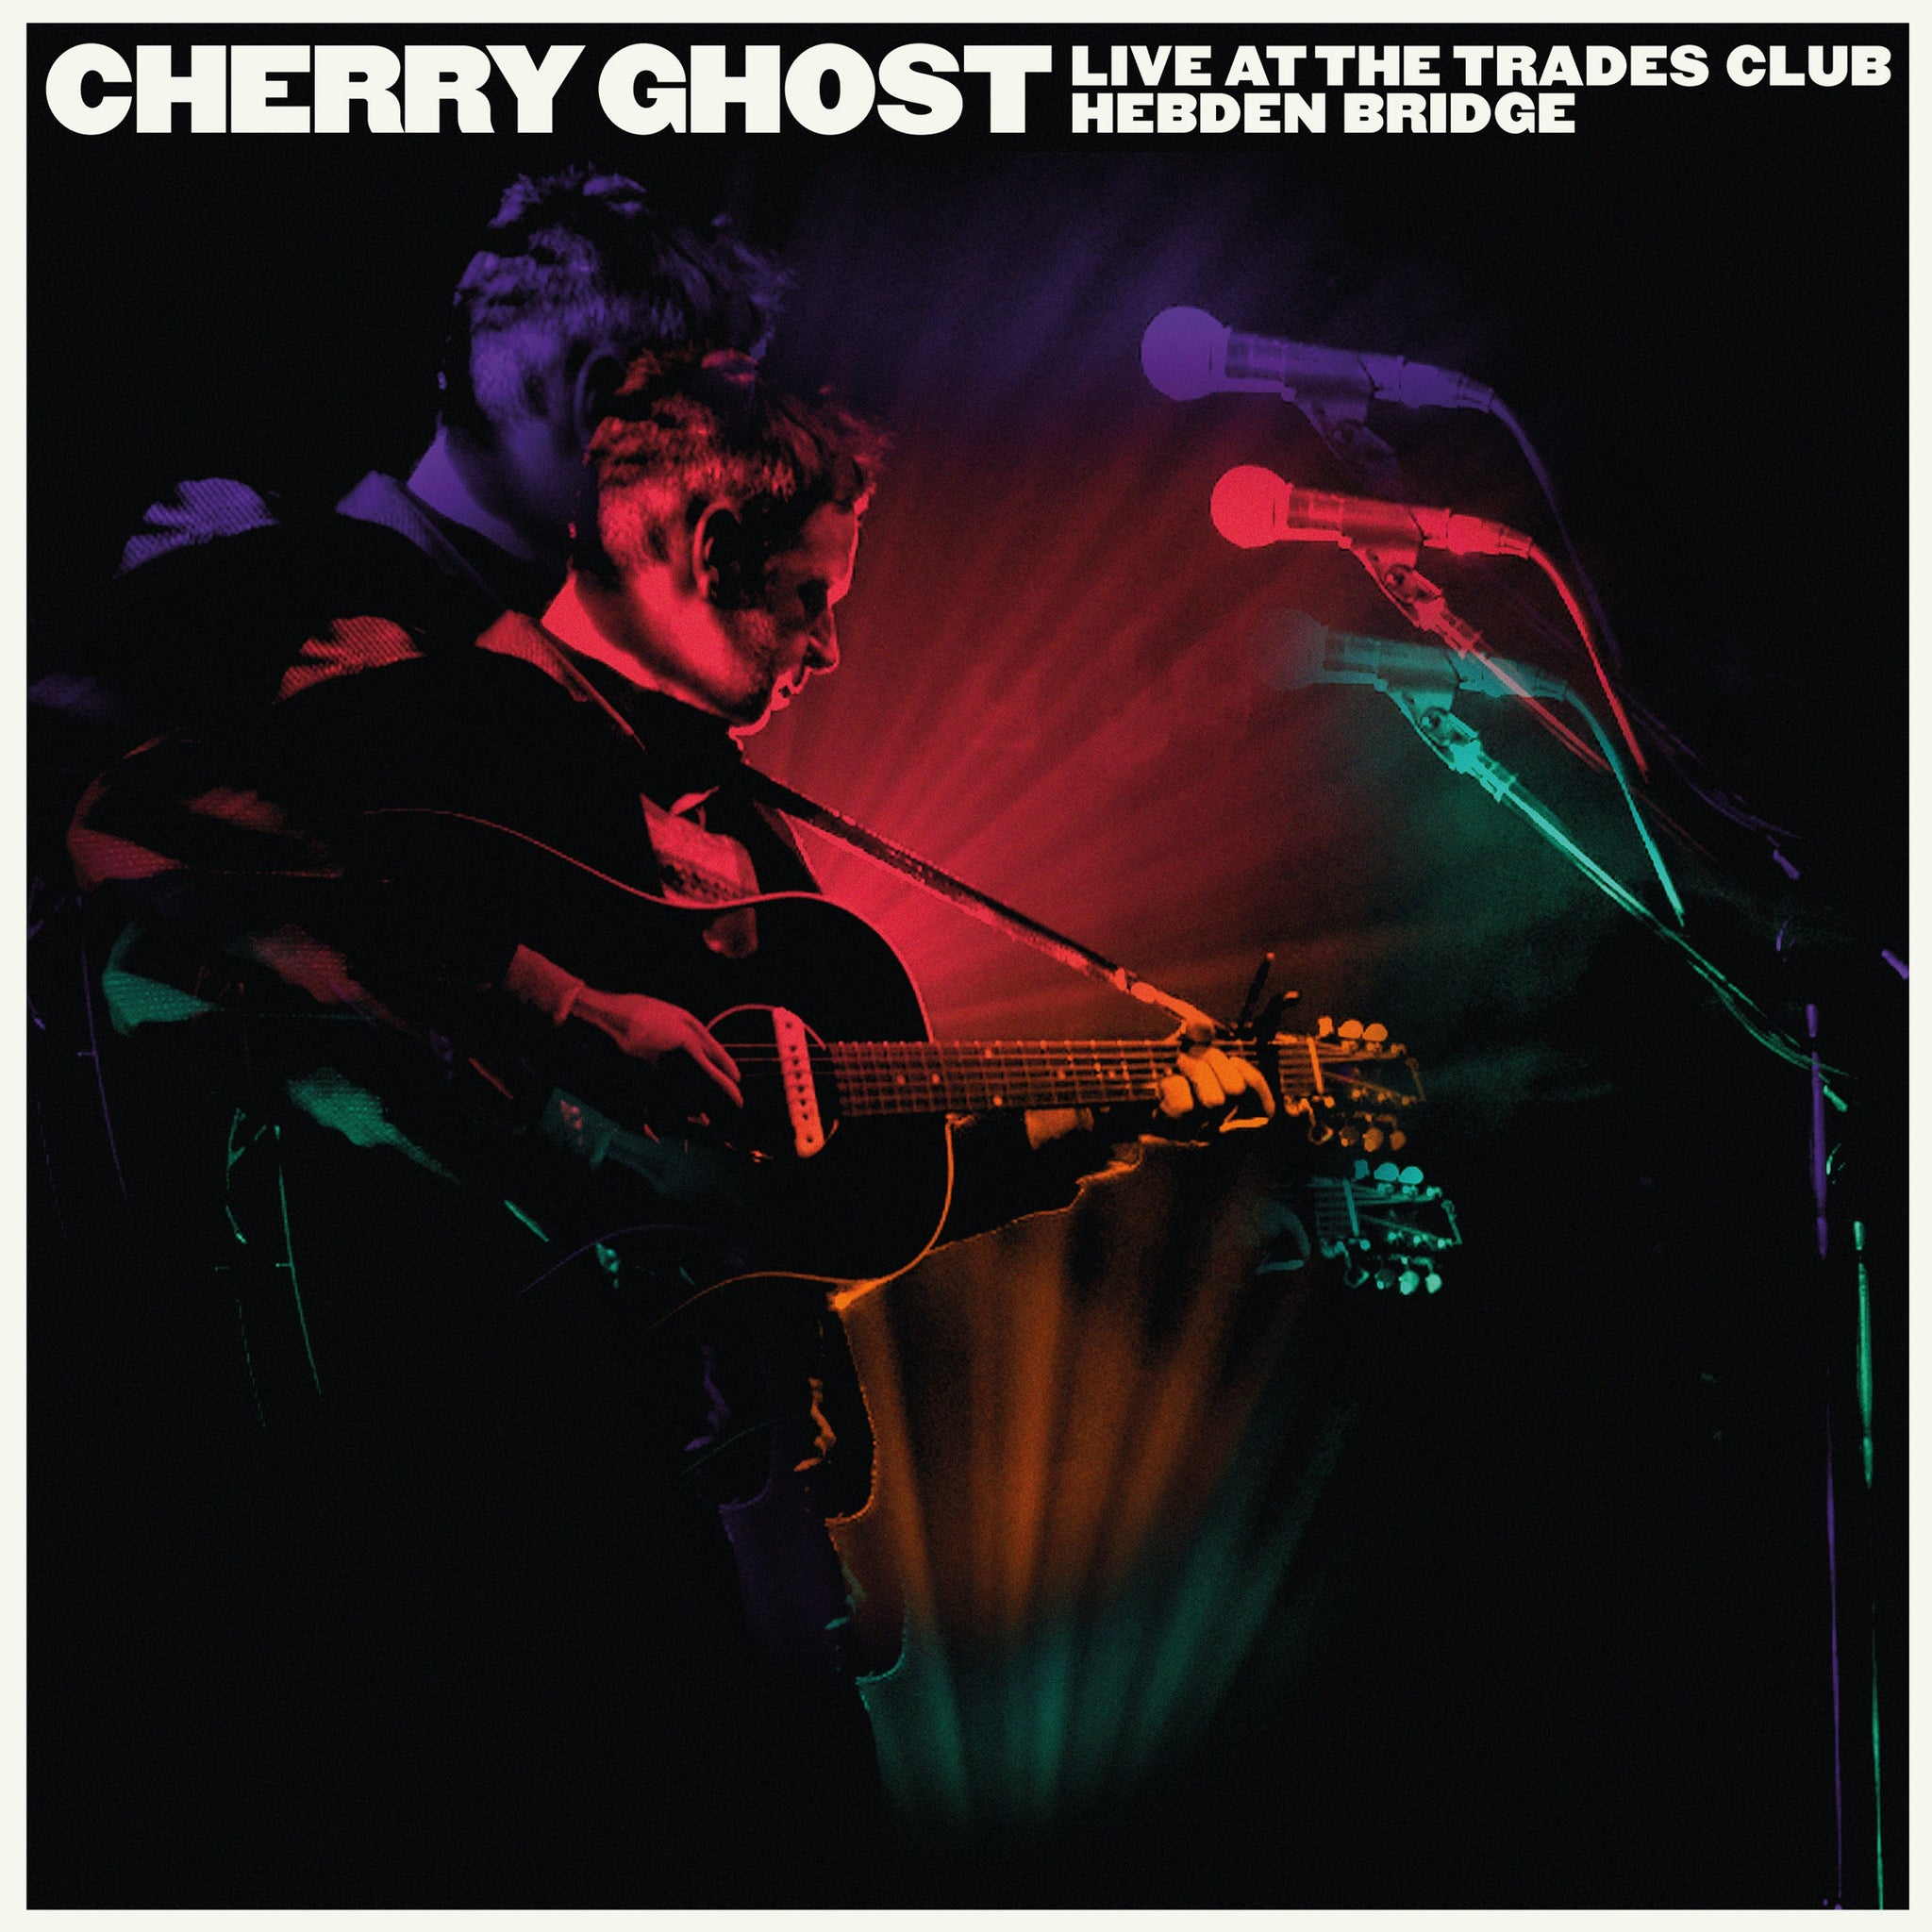 Cherry Ghost - Live at The Trades Club, Hebden Bridge (25 January 2015)